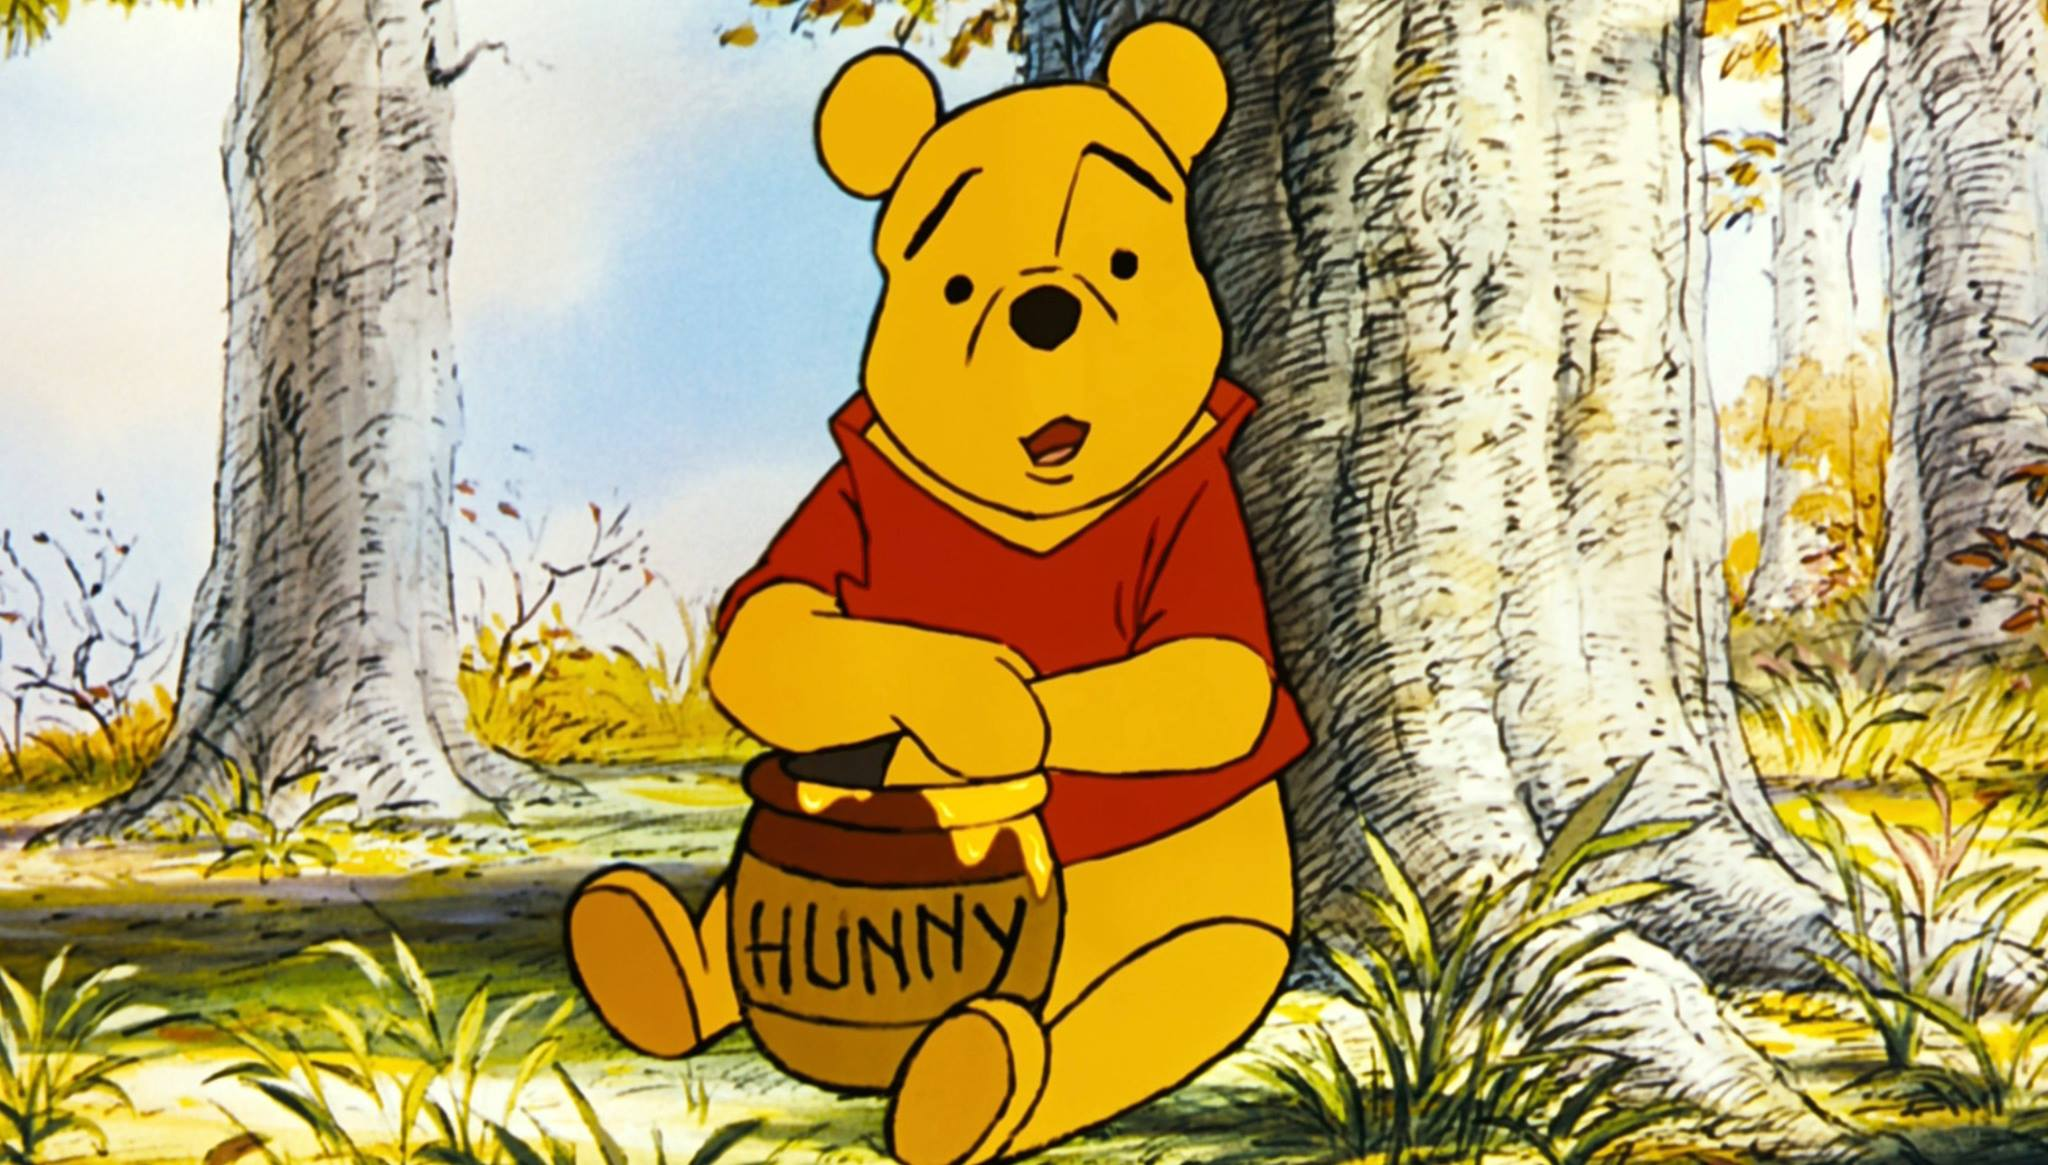 It Turns Out Winnie The Pooh Is Actually A Girl